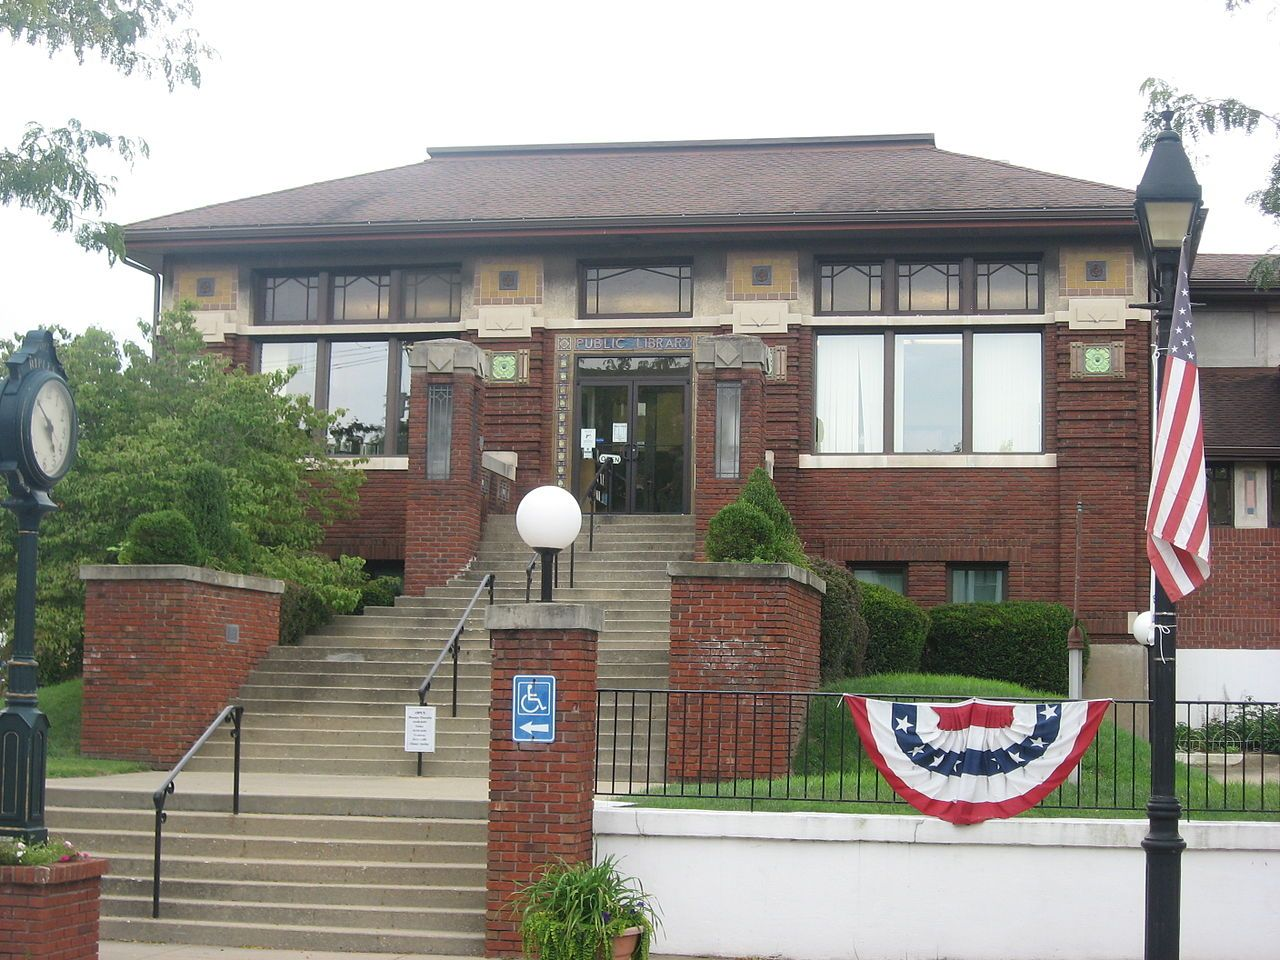 Union Township Public Library